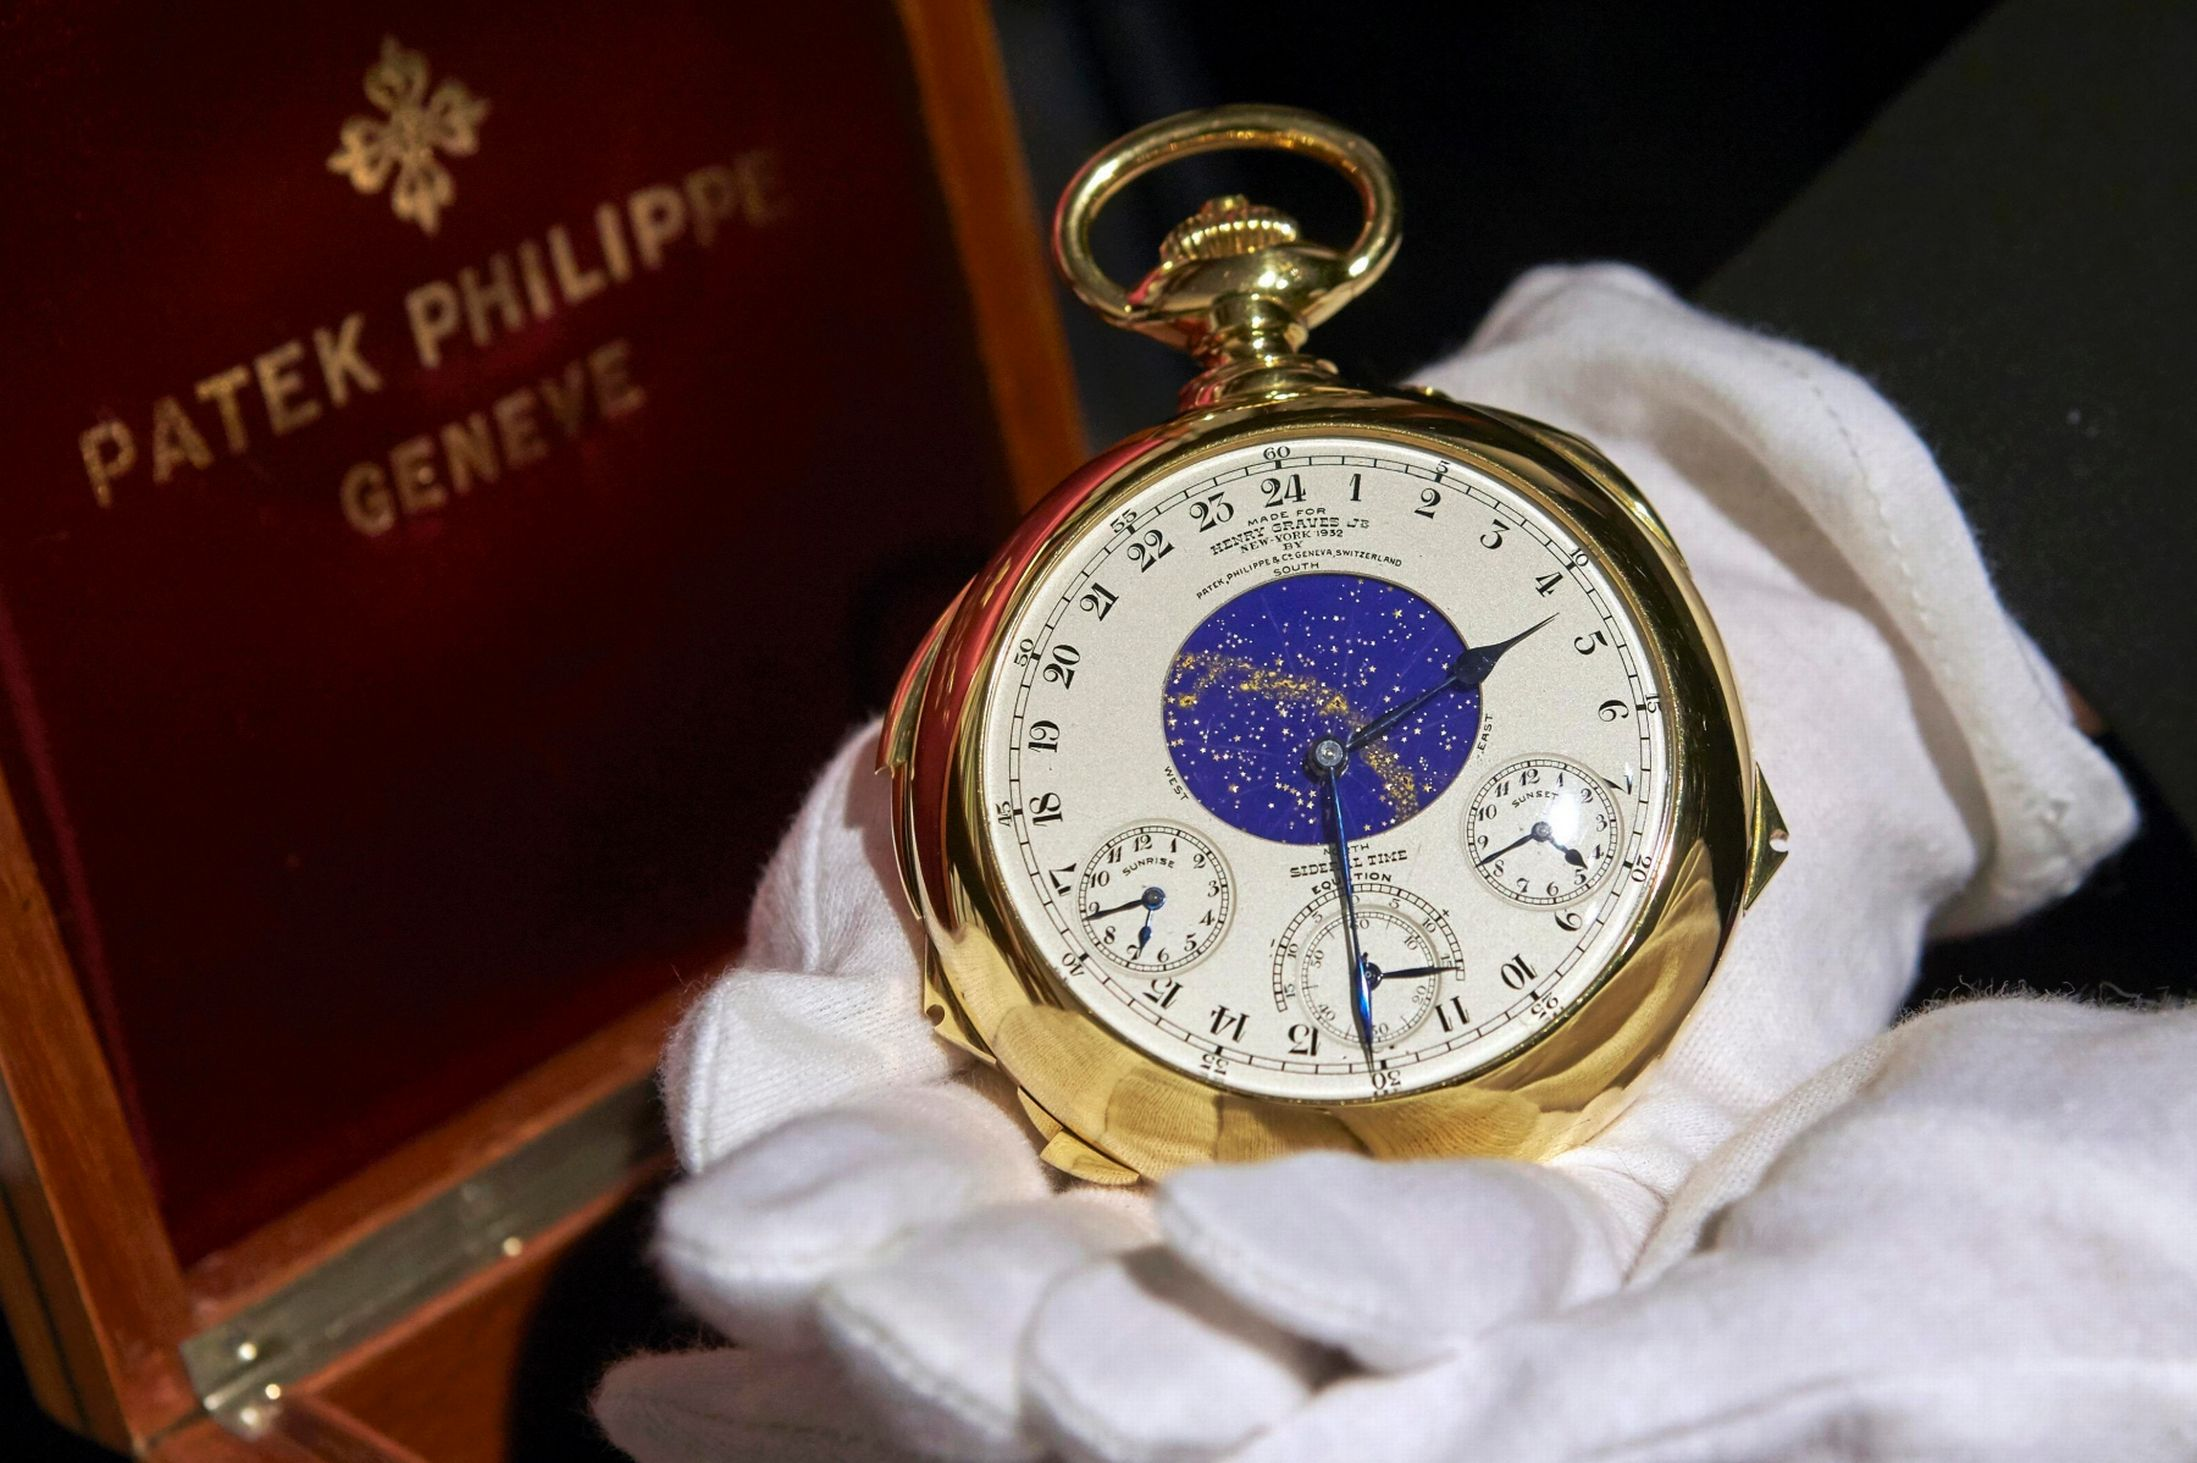 La Henry Graves Supercomplication